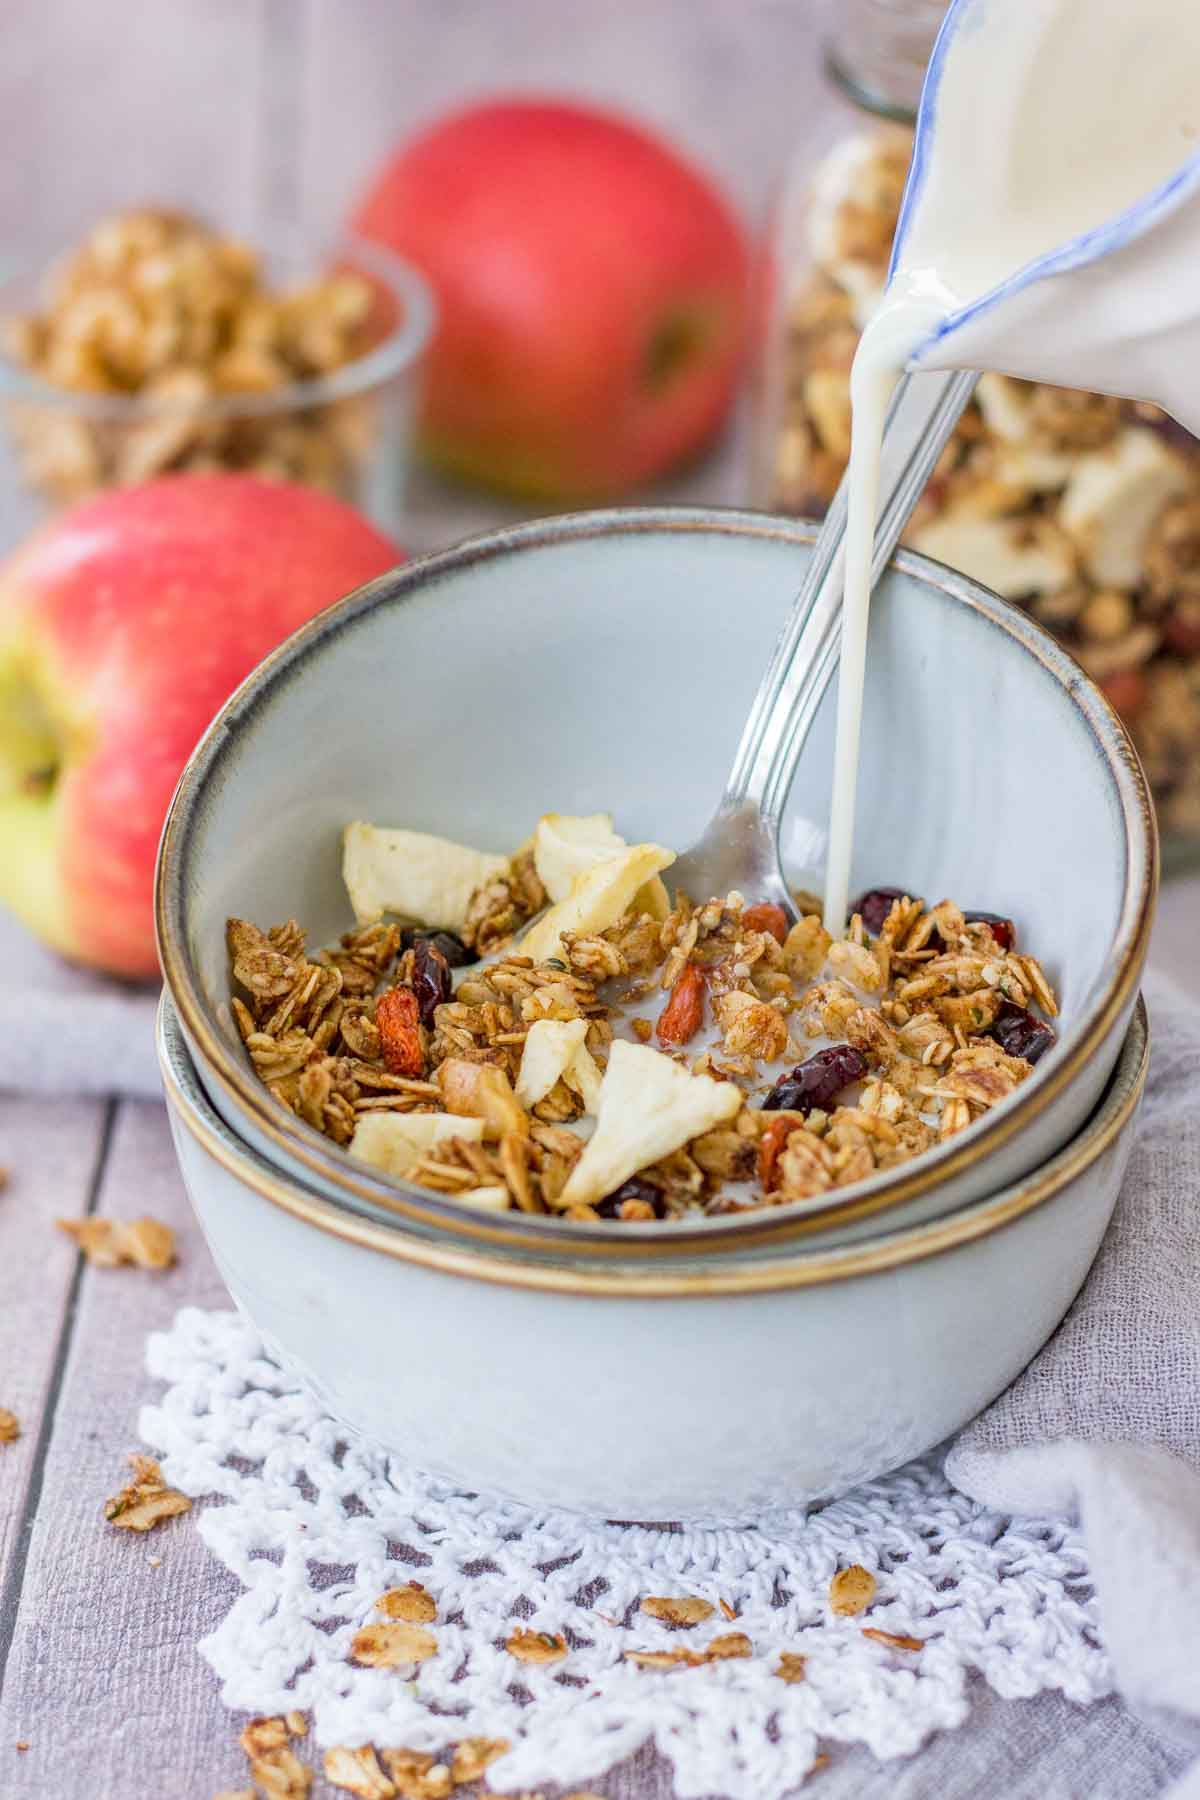 Apple Cinnamon Granola served in a bowl with a milk